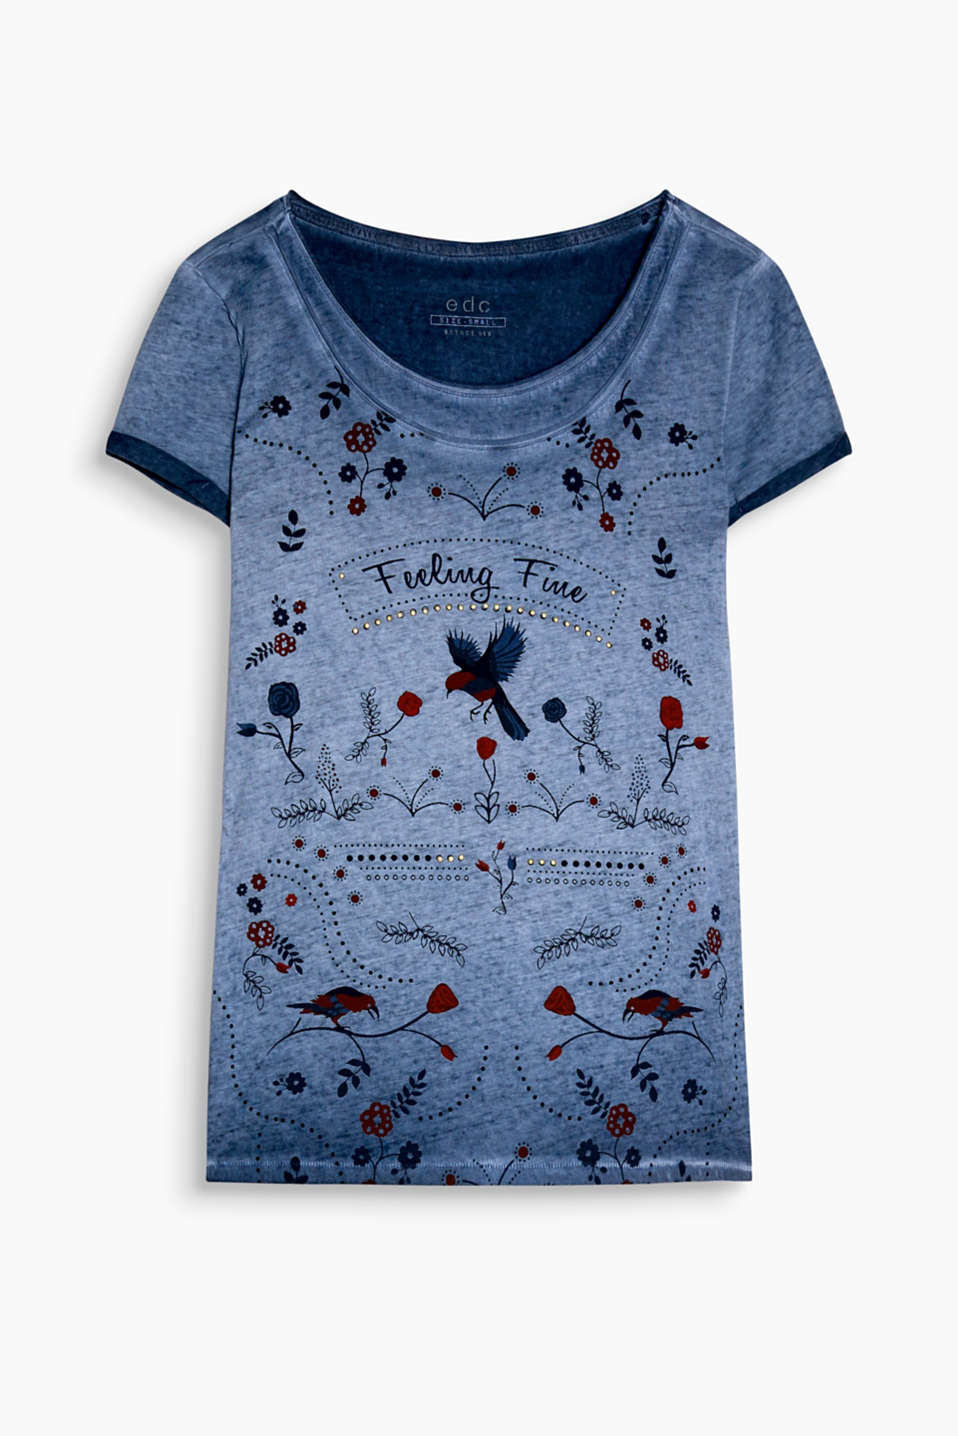 Slightly fitted printed top with a pigment dye effect and decorative studs, 100% cotton